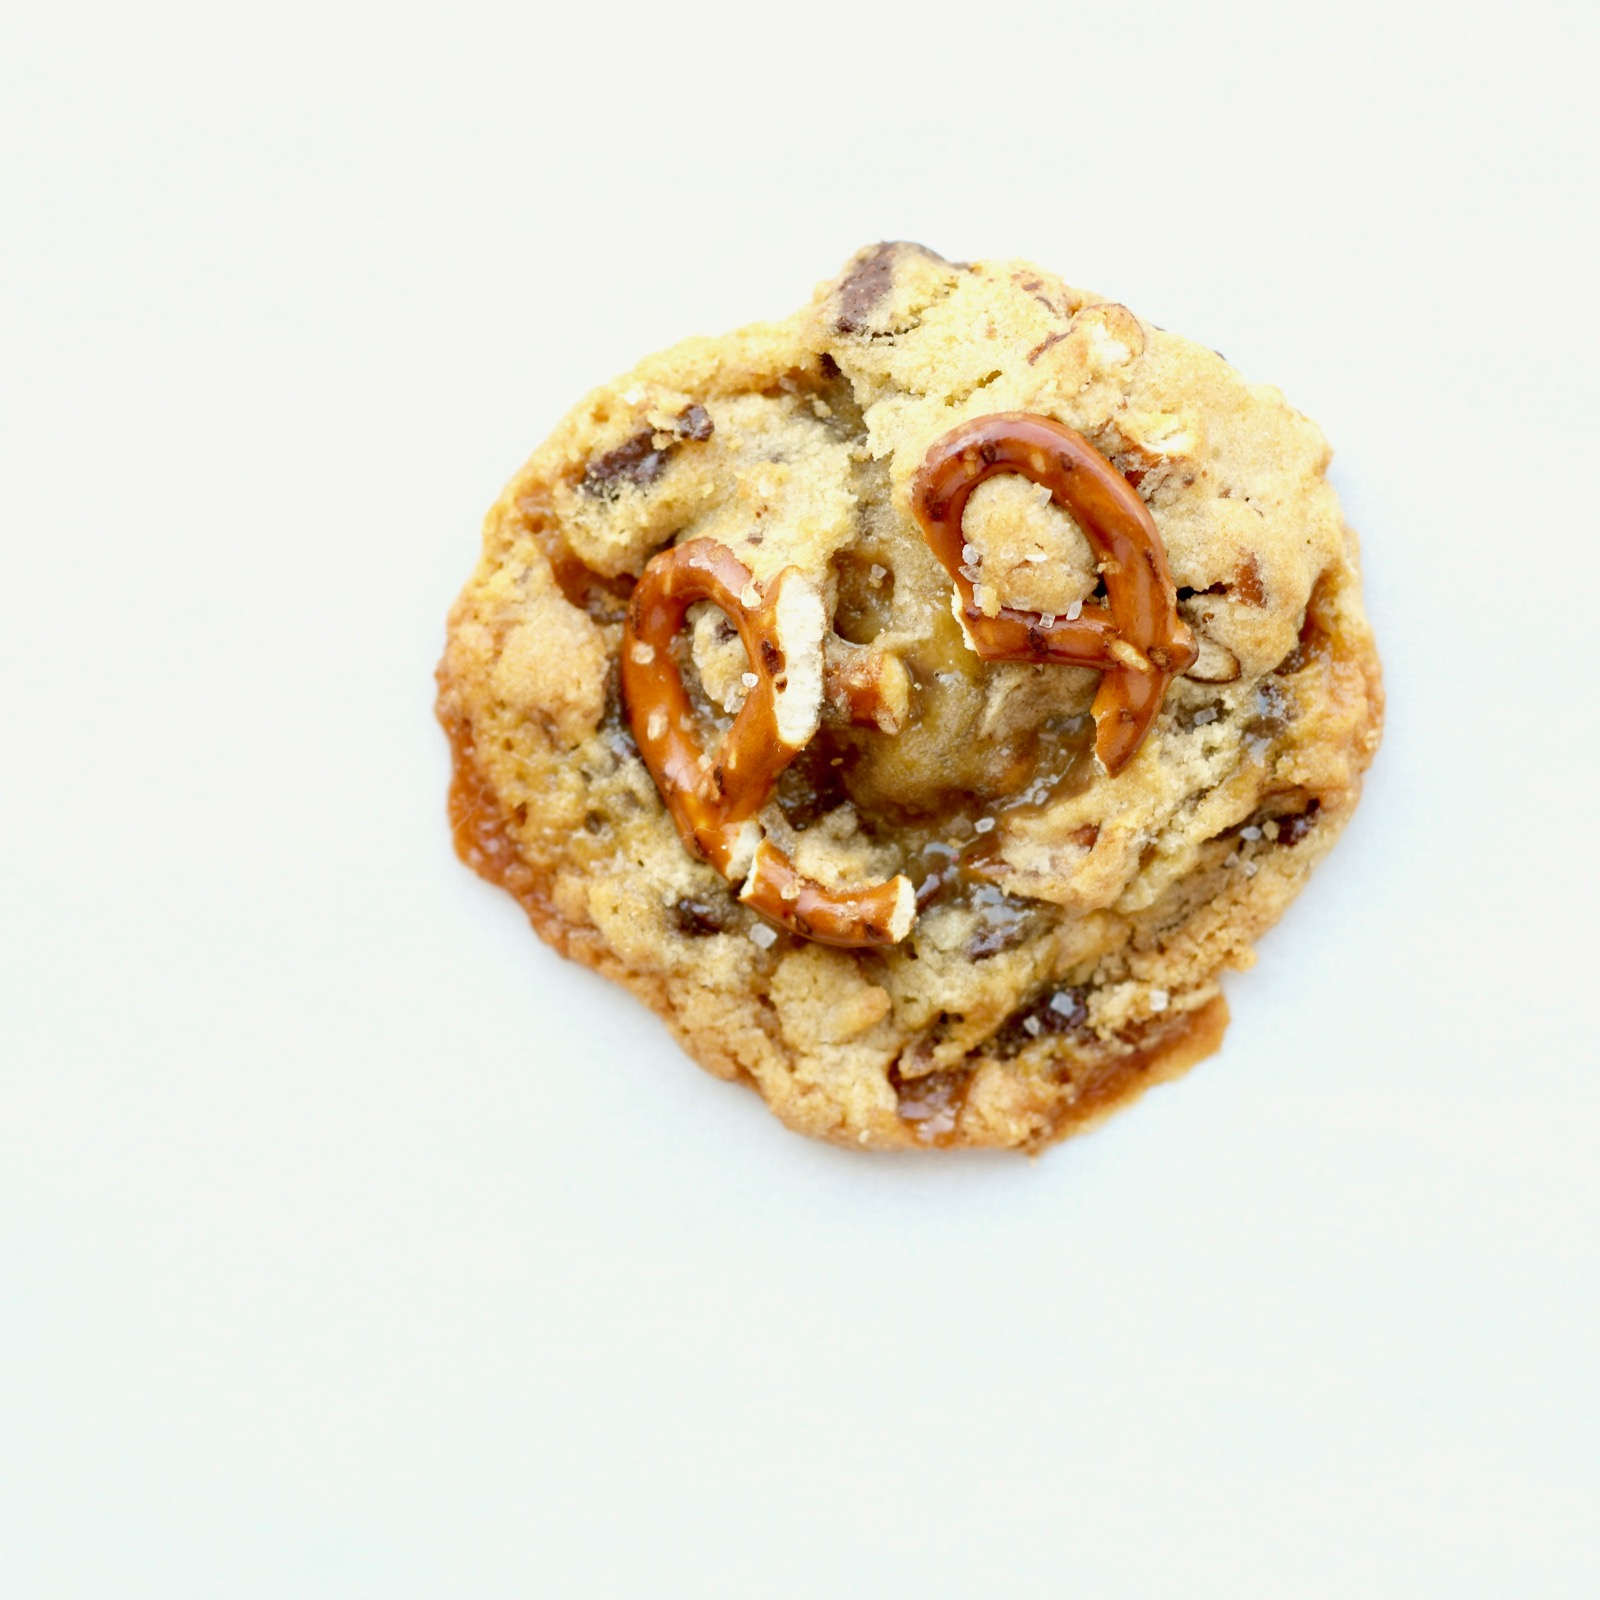 Salted Pretzel Chocolate Chip Cookie